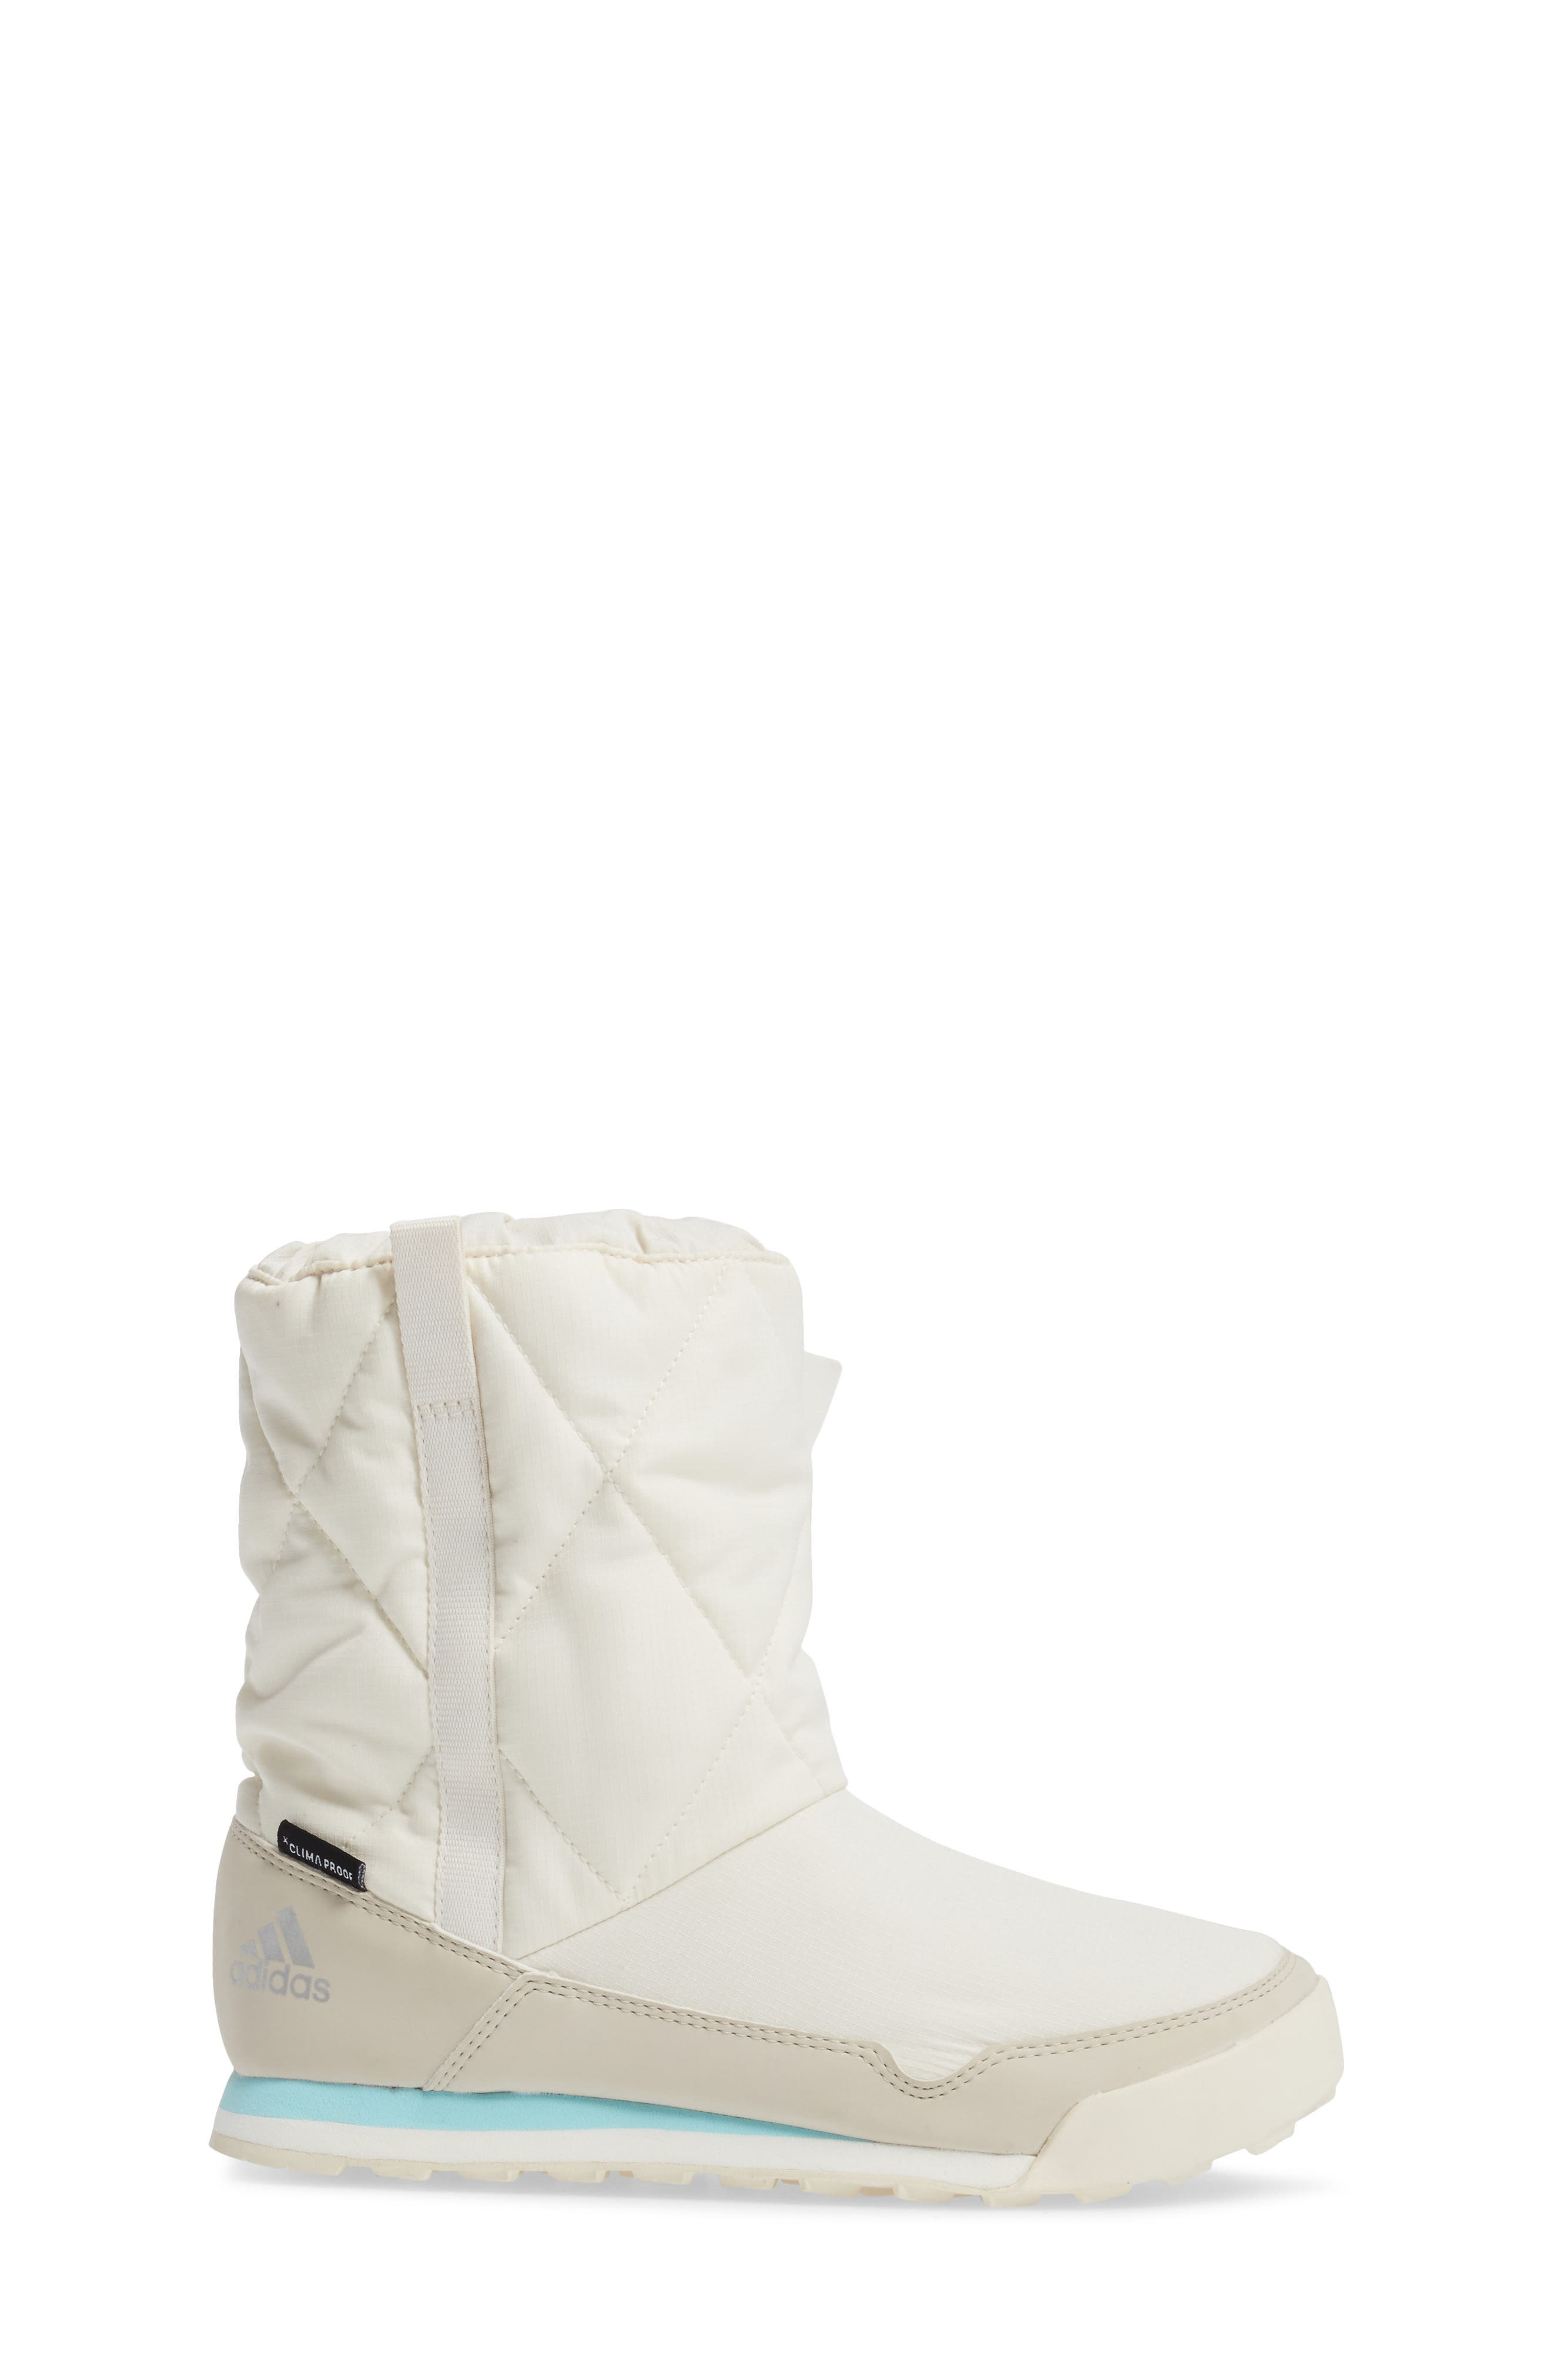 CW Snowpitch Insulated Waterproof Boot,                             Alternate thumbnail 3, color,                             Chalk White/ Clear Brown/ Aqua